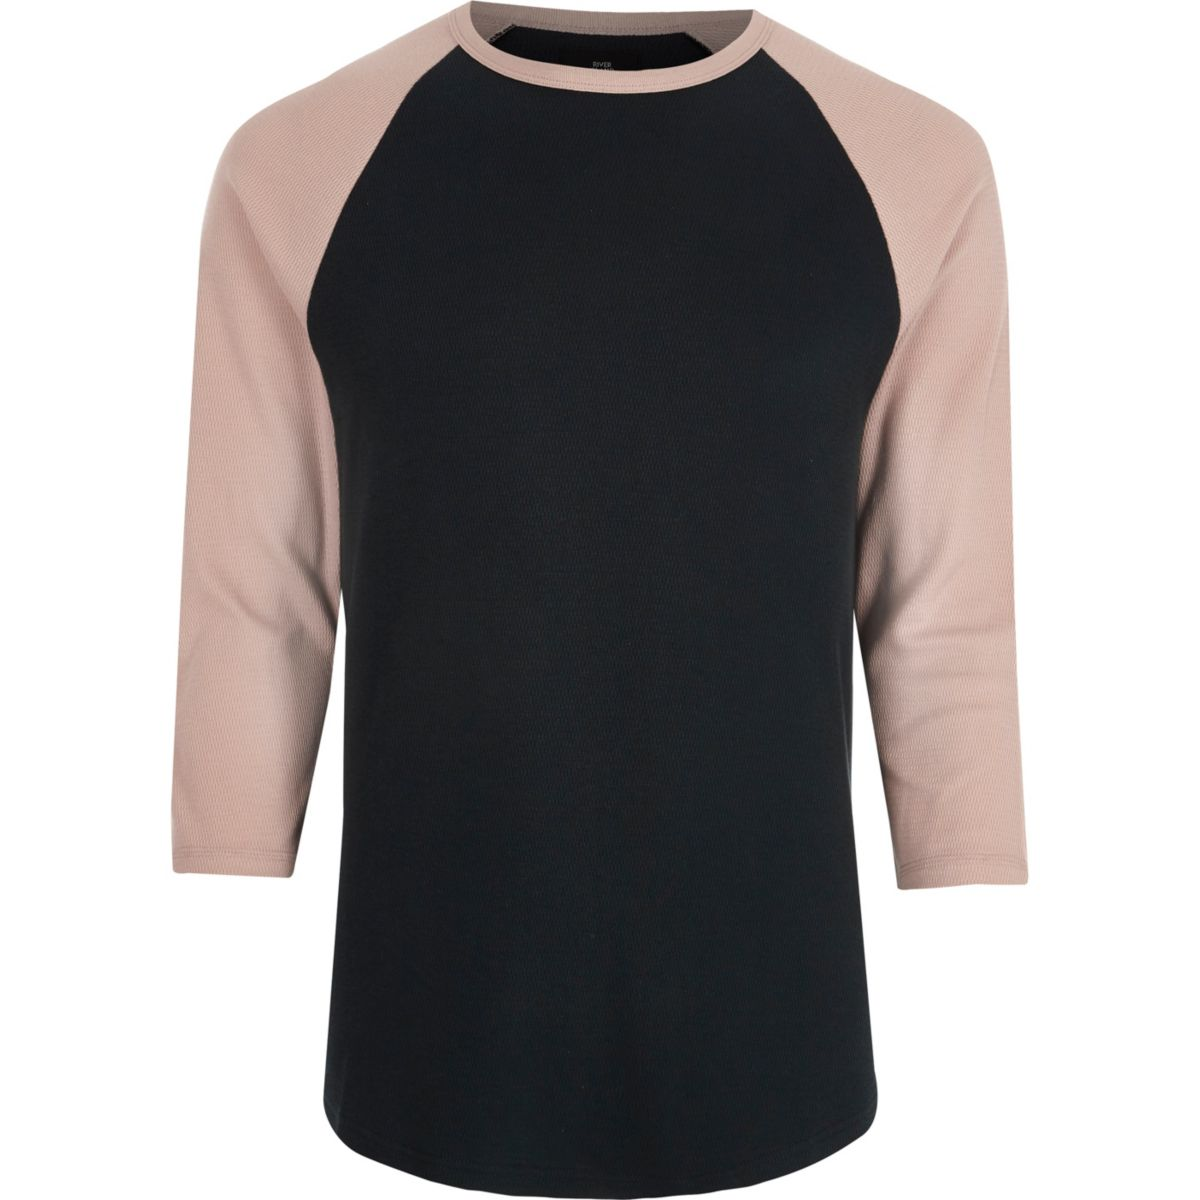 Pink three quarter raglan sleeve T-shirt